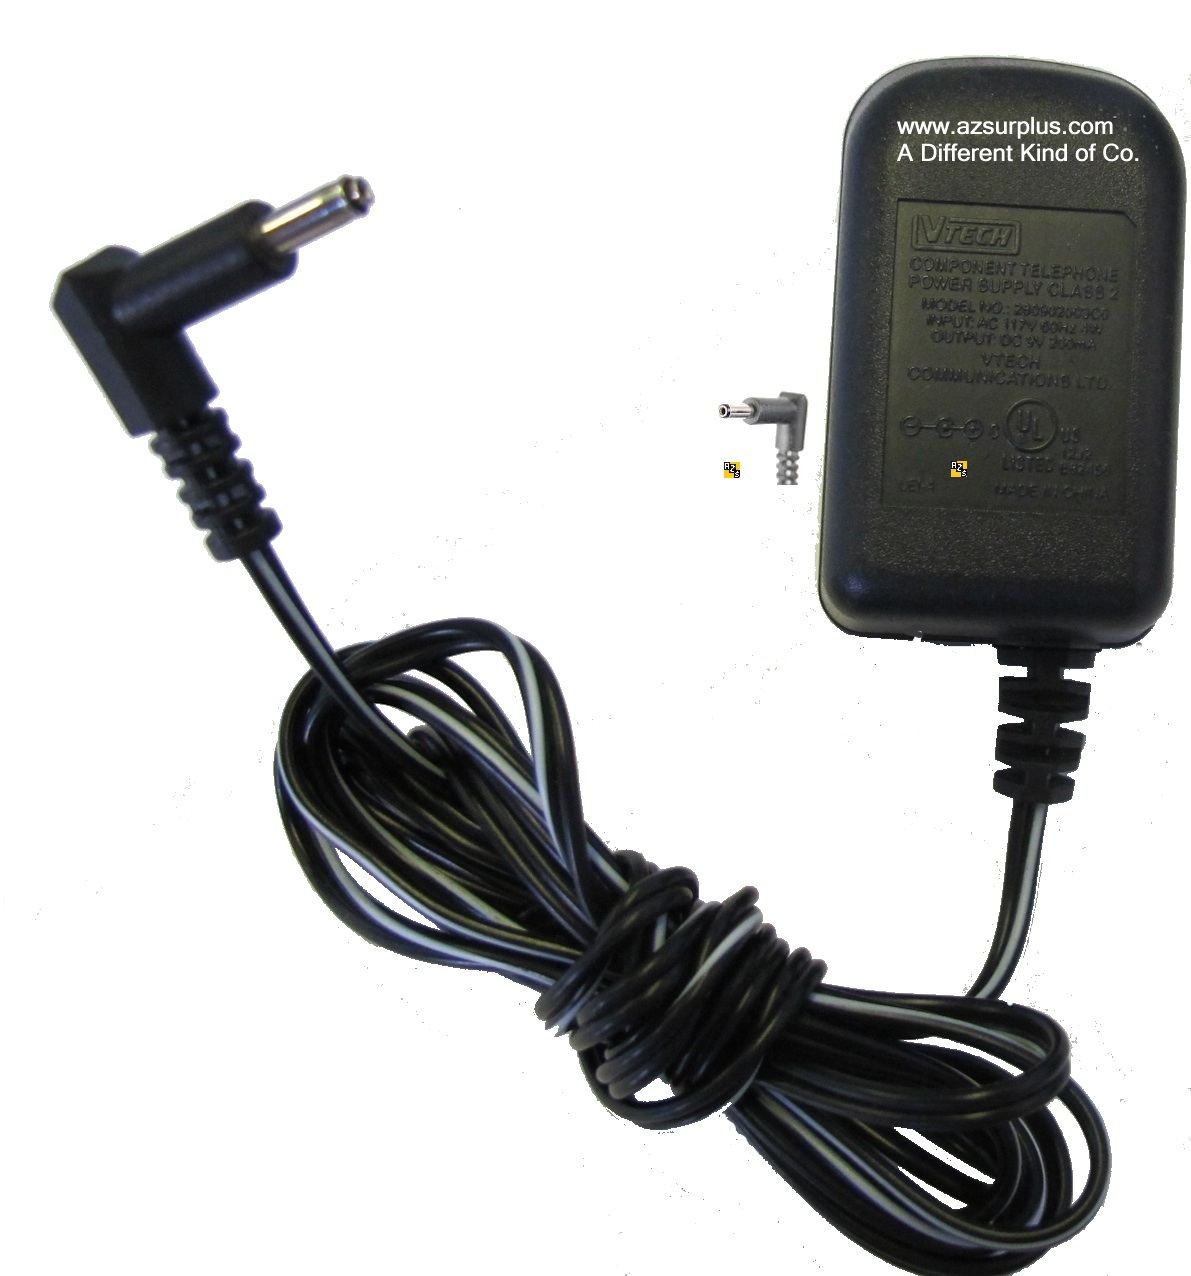 VTECH 280802OO3CO AC ADAPTER 9VDC 200mA USED -(+) 1.2x3.5mm 90°